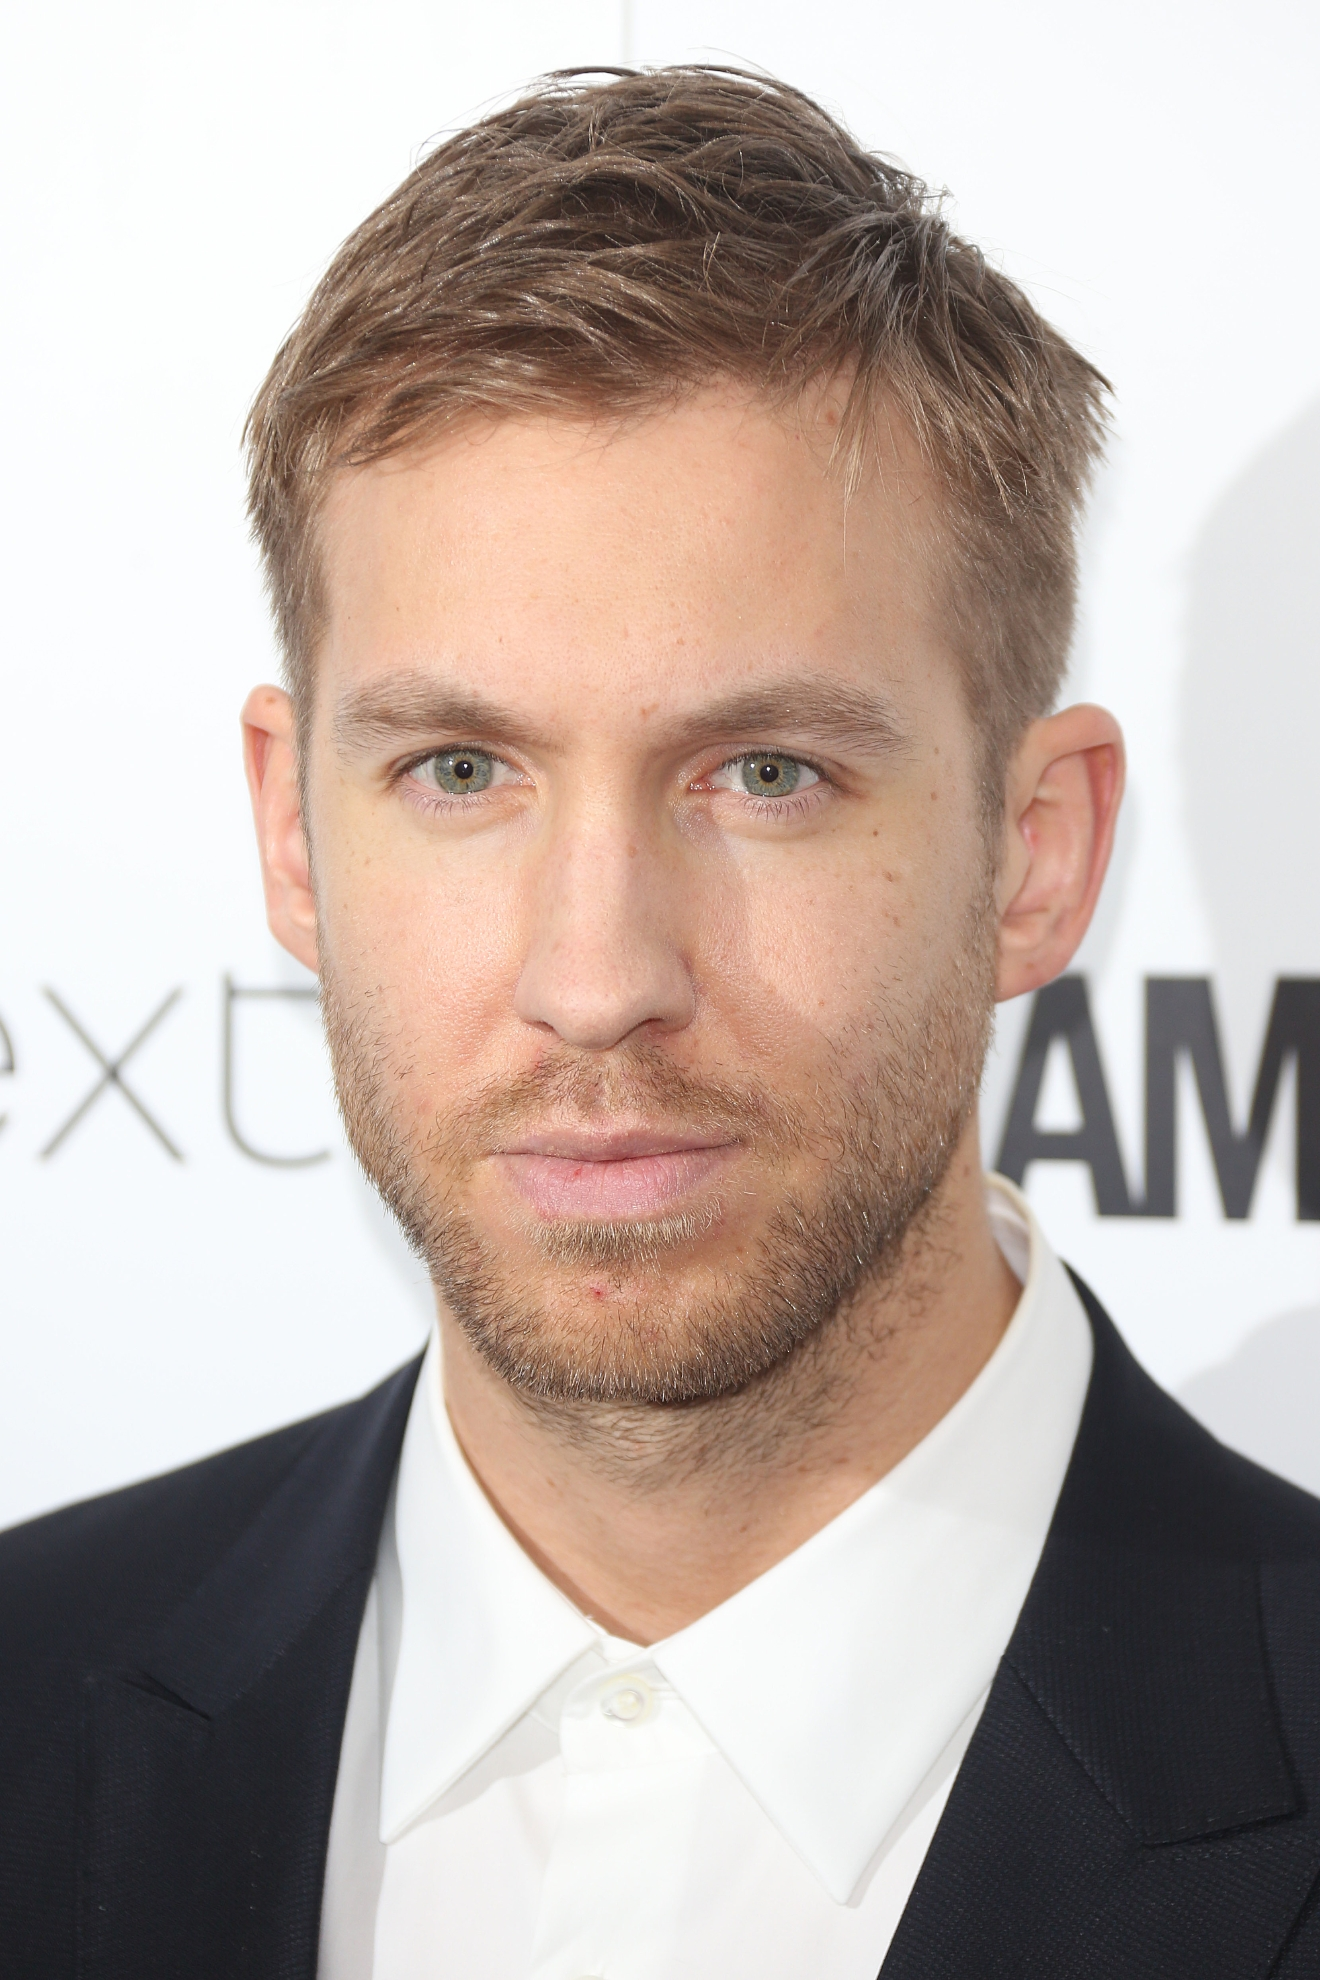 The Glamour Women of the Year Awards 2015 - Arrivals  Featuring: Calvin Harris Where: London, United Kingdom When: 02 Jun 2015 Credit: Lia Toby/WENN.com